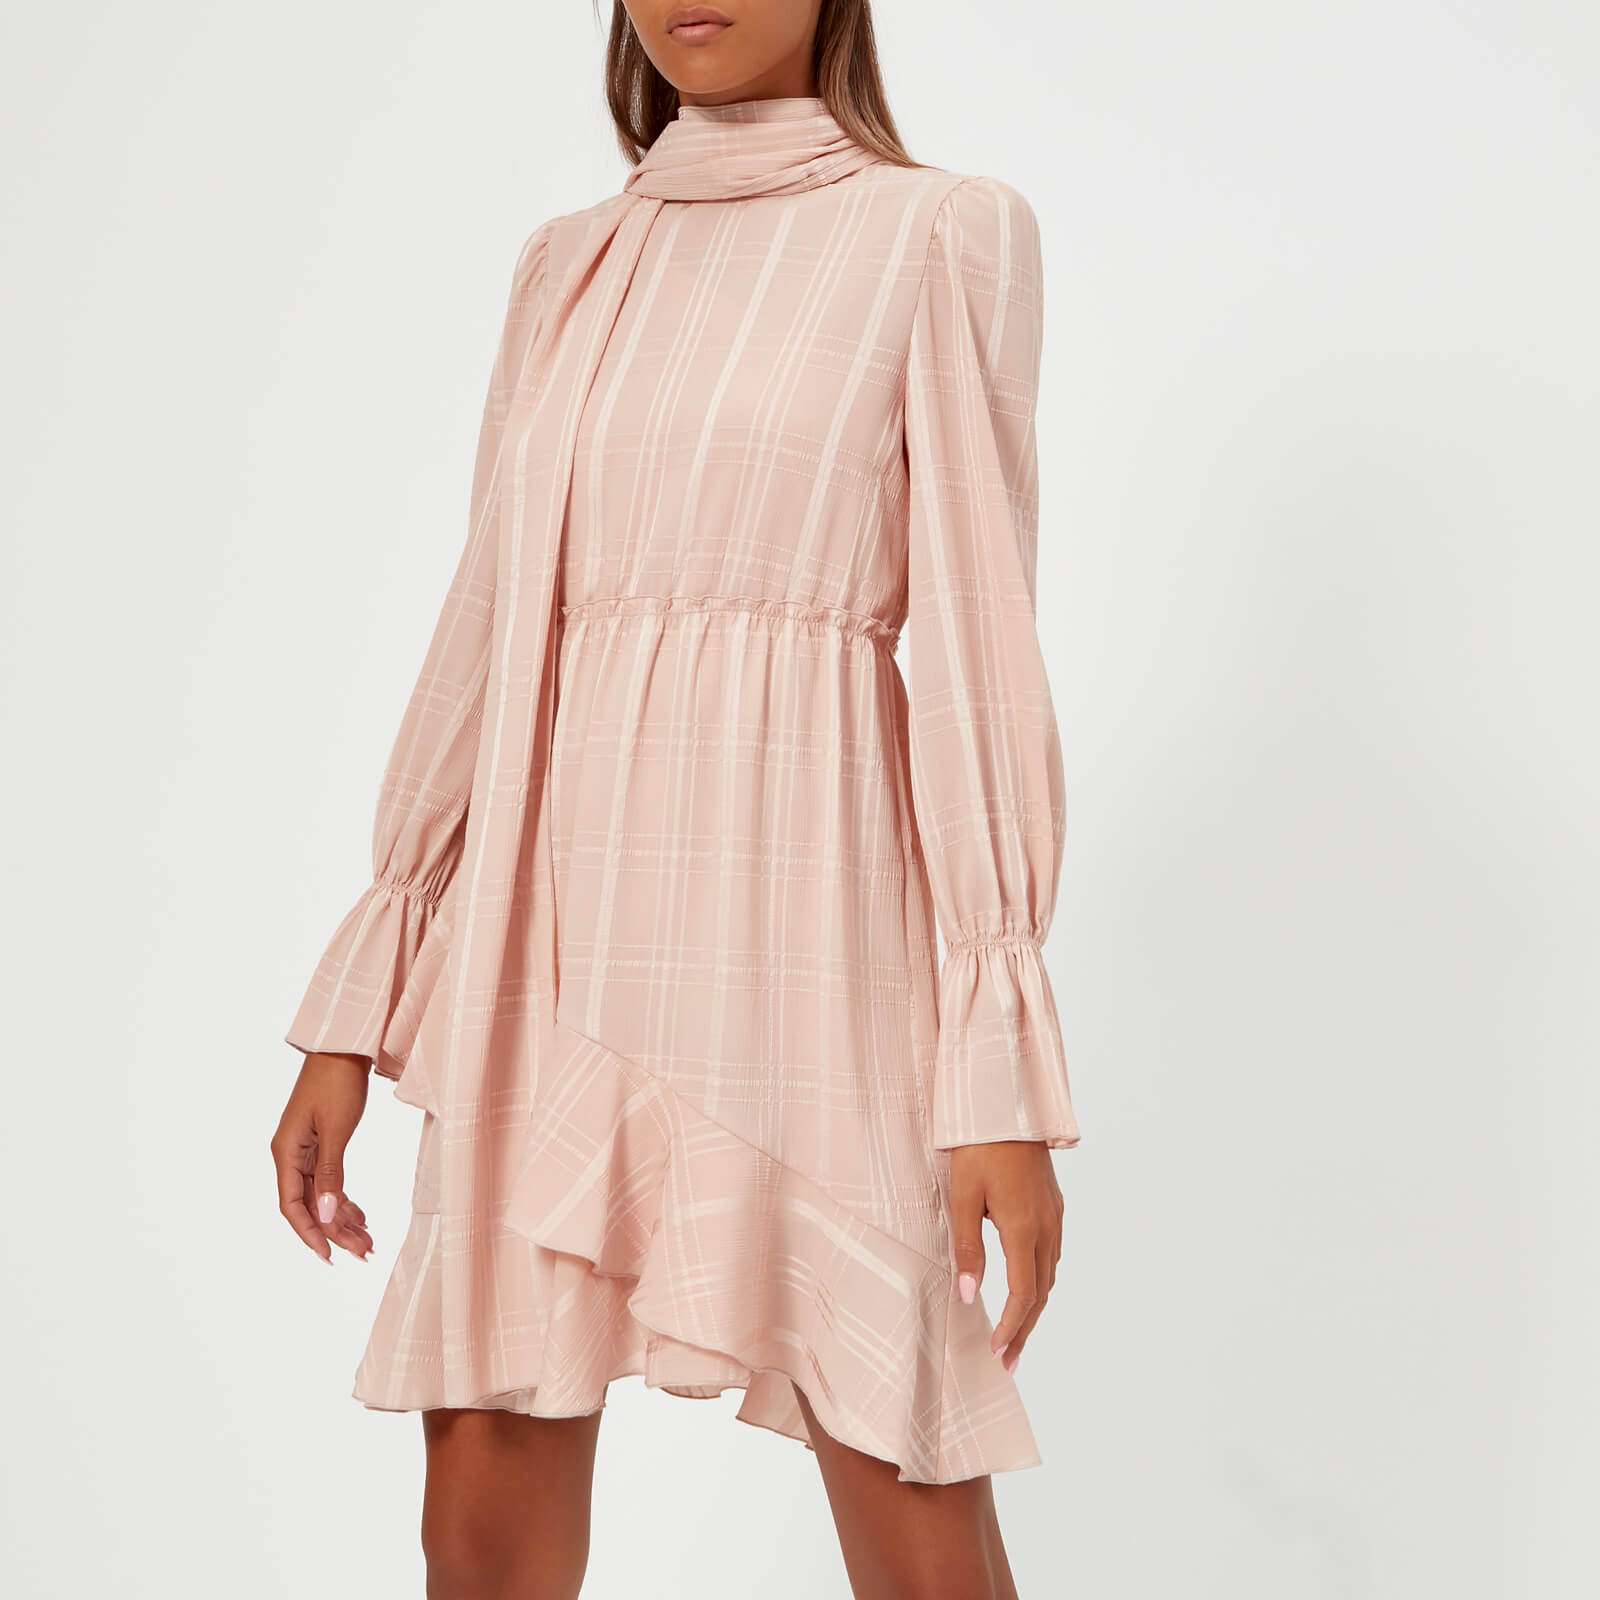 6a3dcd8d297 See By Chloé Women s Ruffle Long Sleeve Dress - Smoky Pink - Free UK ...